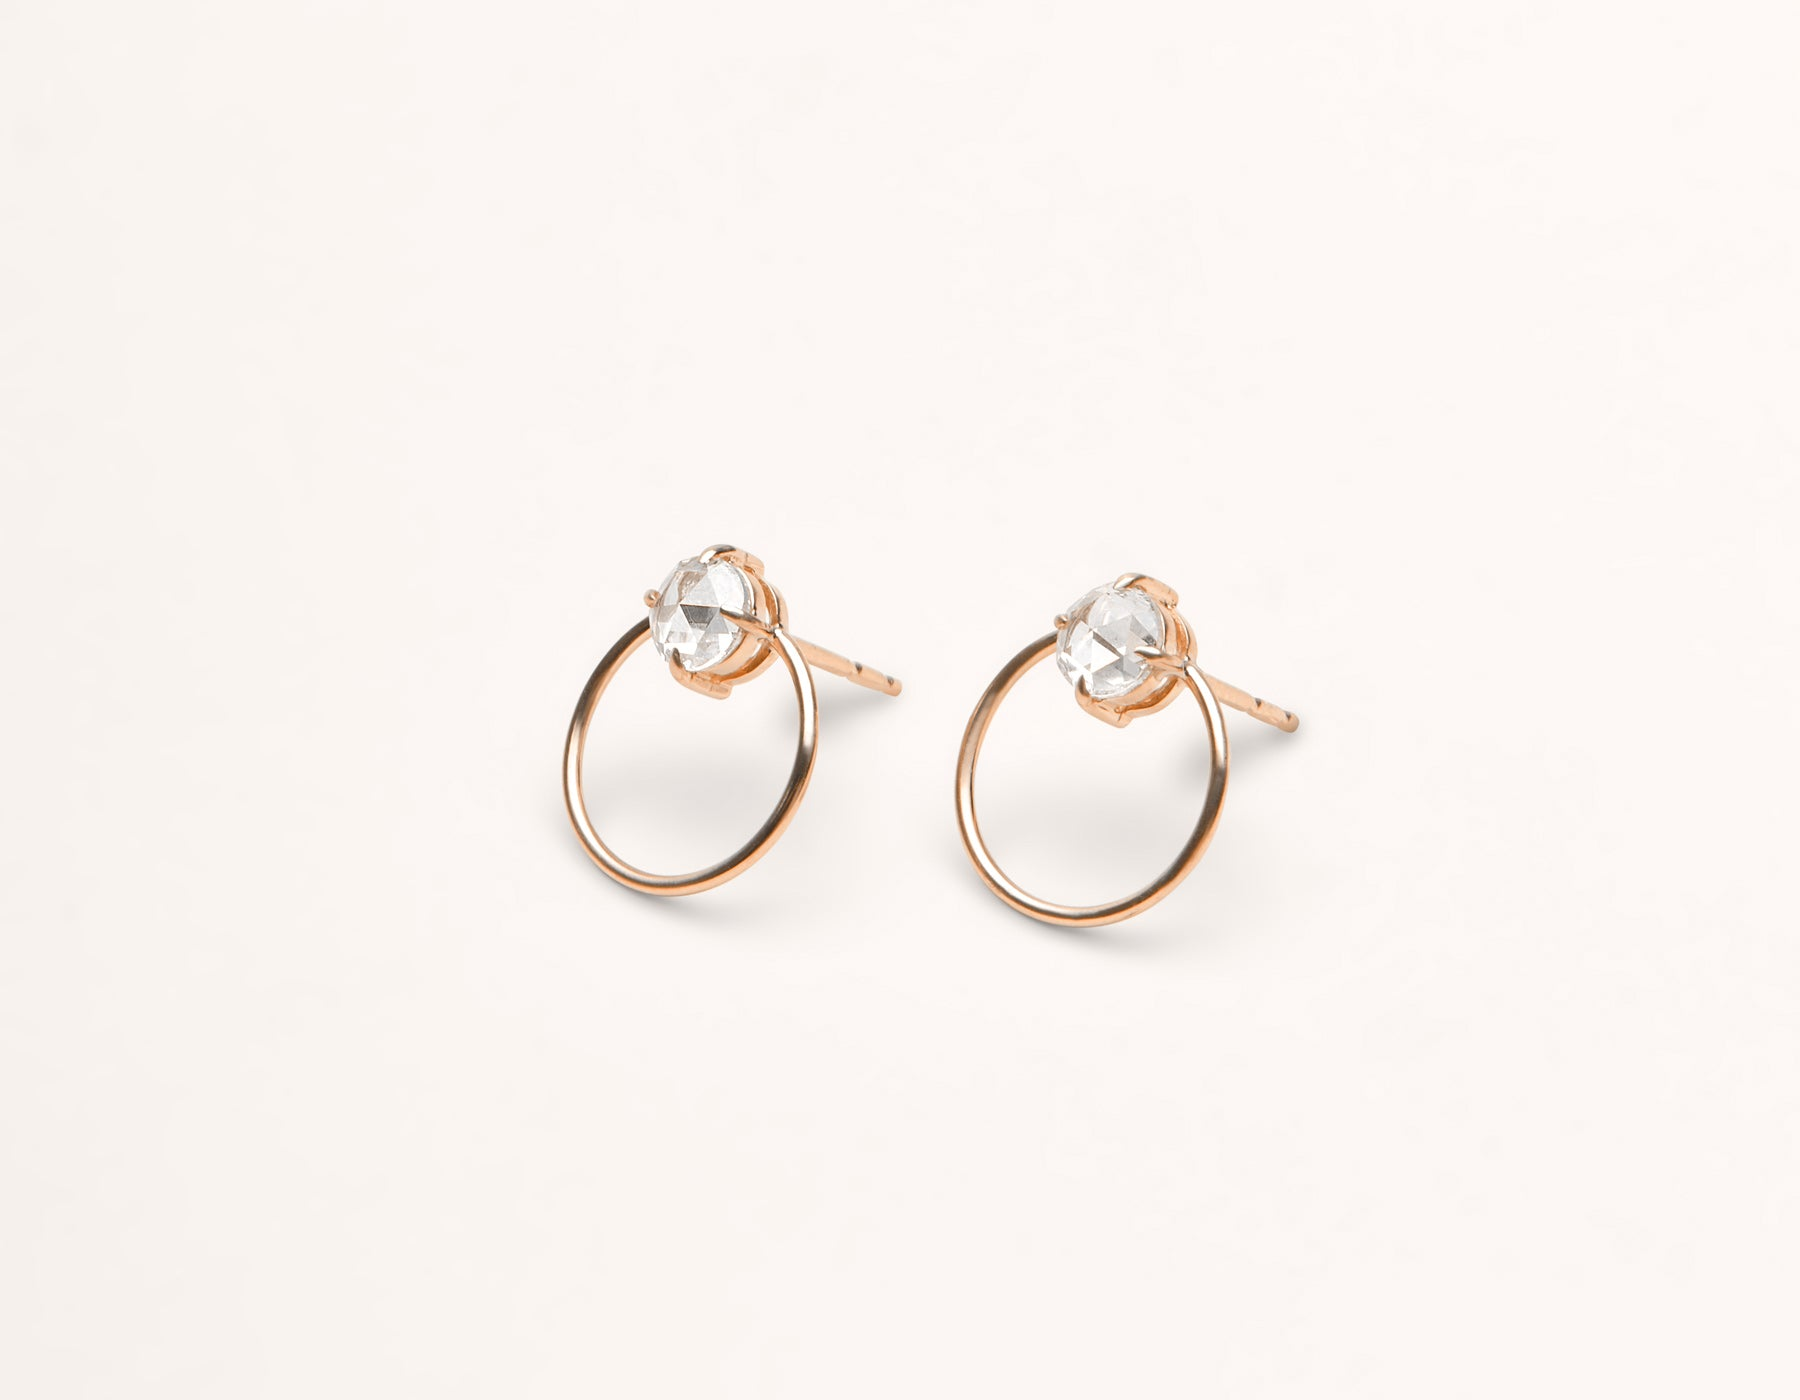 simple classic 18k solid gold .5 carat round Diamond Door Knocker hoop earring stud by Vrai and Oro black label minimalist jewelry, 18K Rose Gold